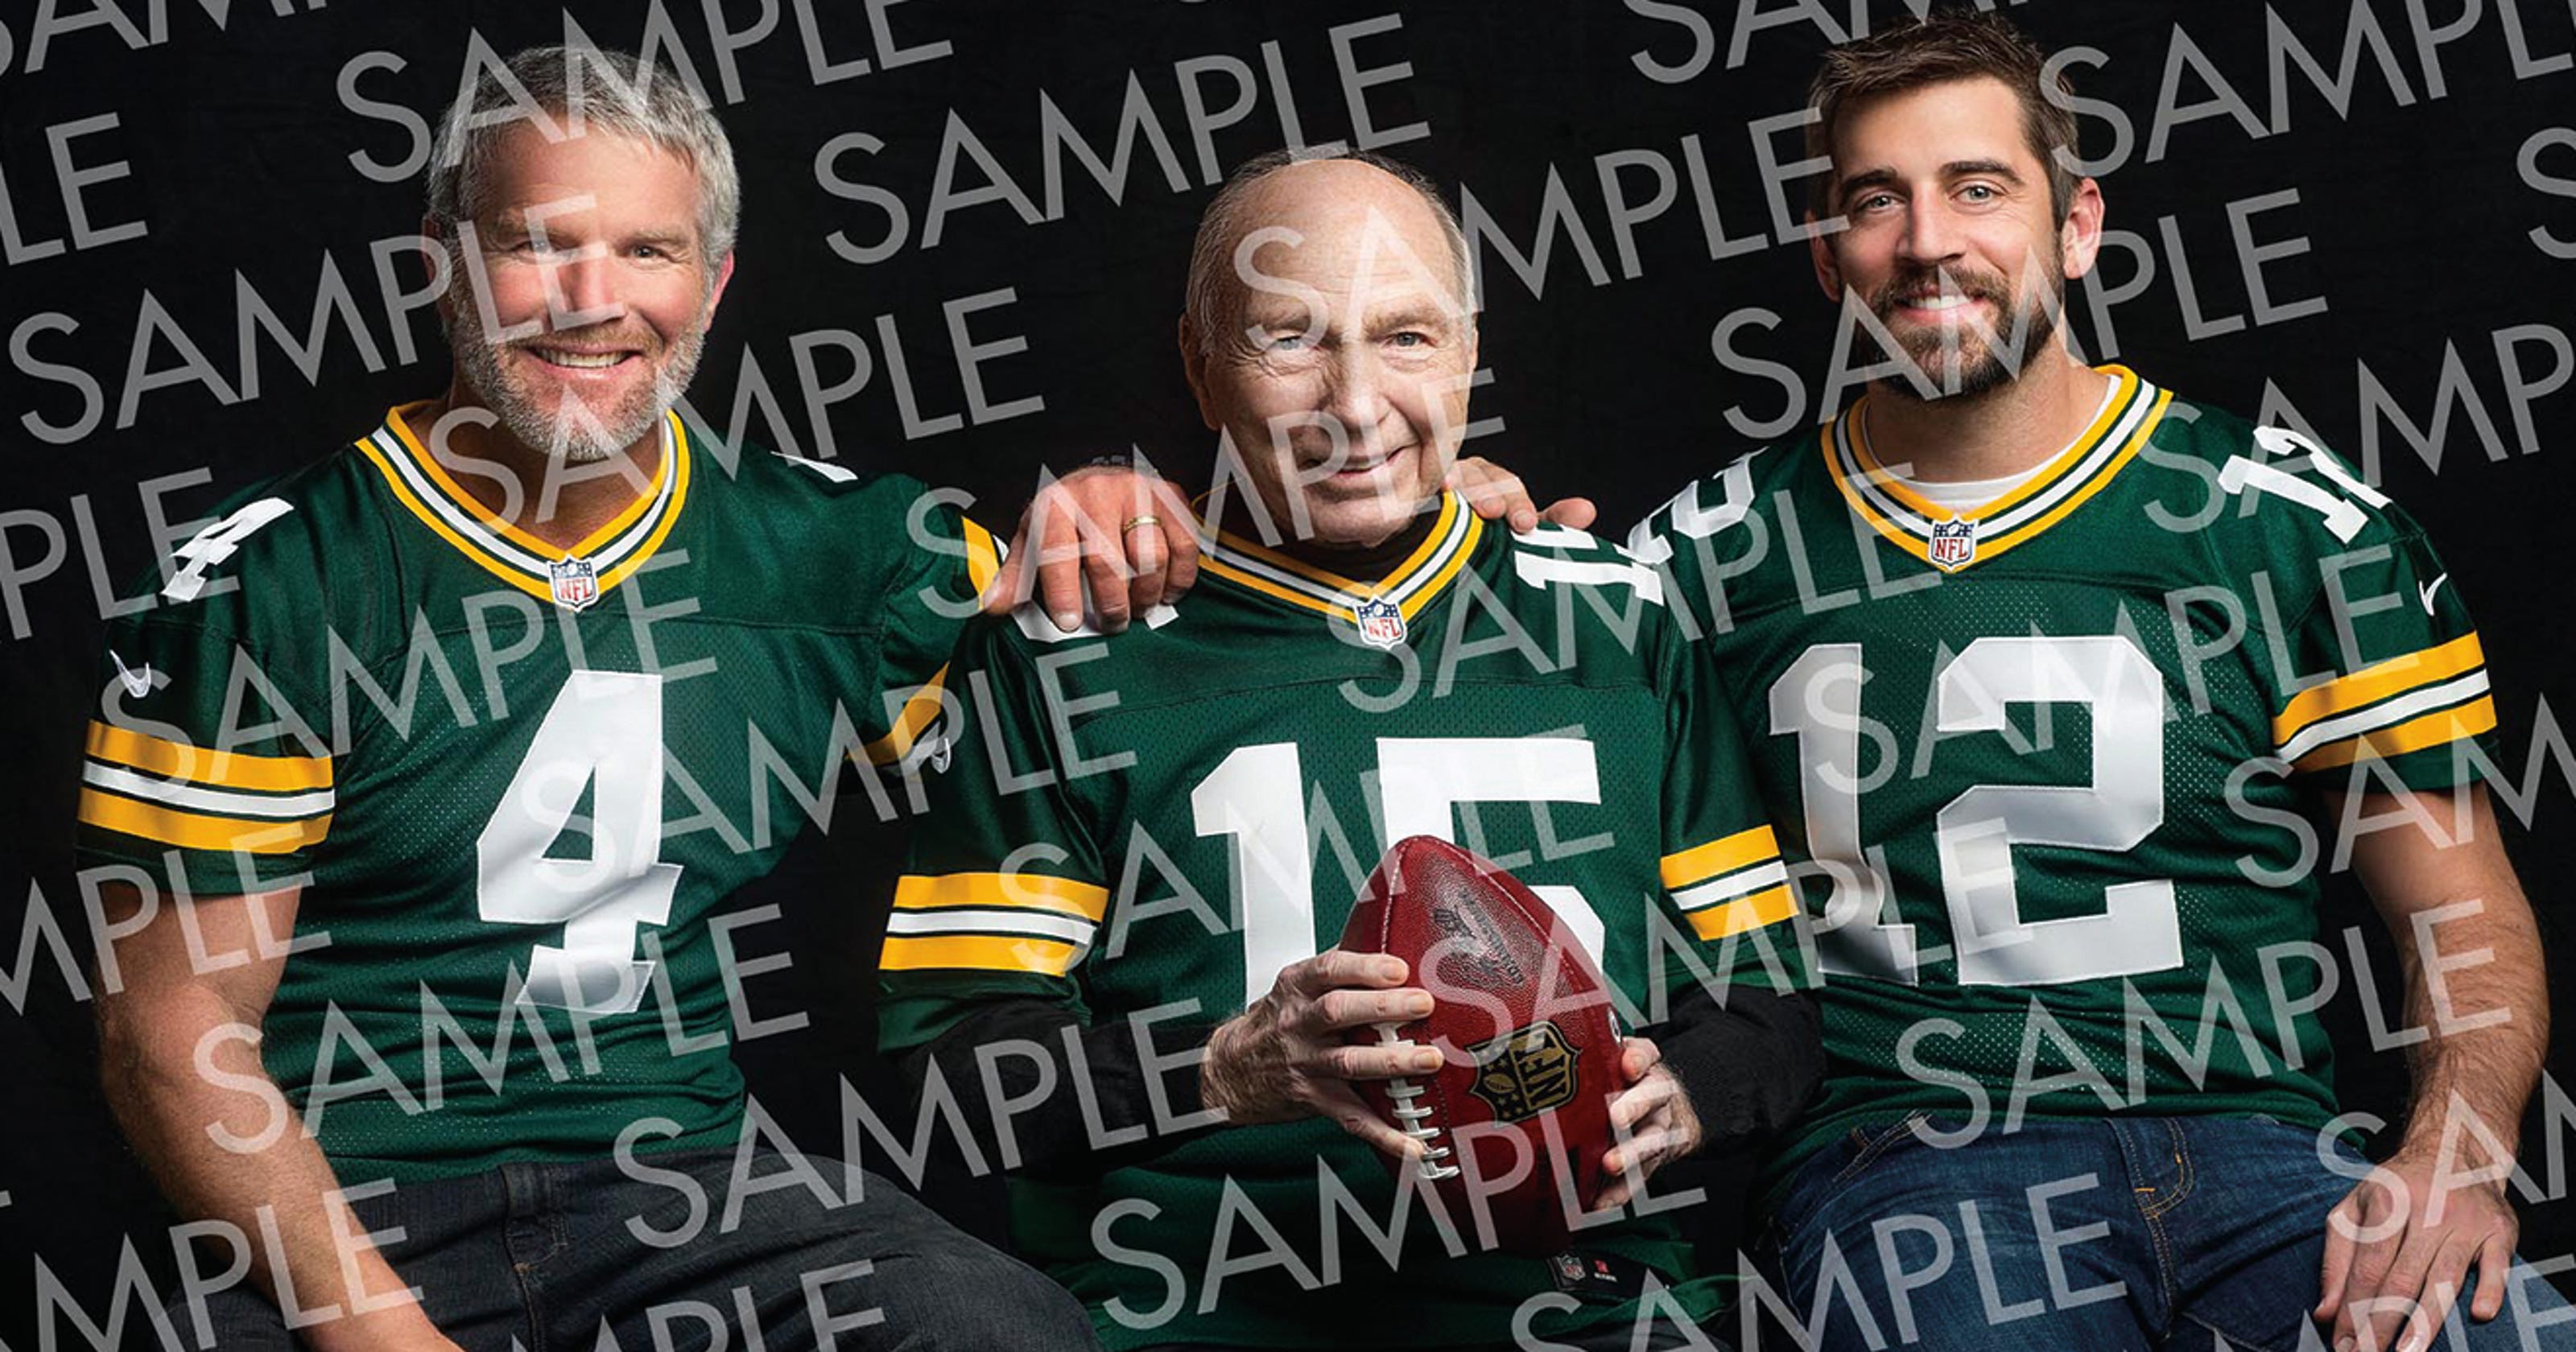 Qbs Sample Width Height Fit Crop Packers Star Rodgers Favre Starr